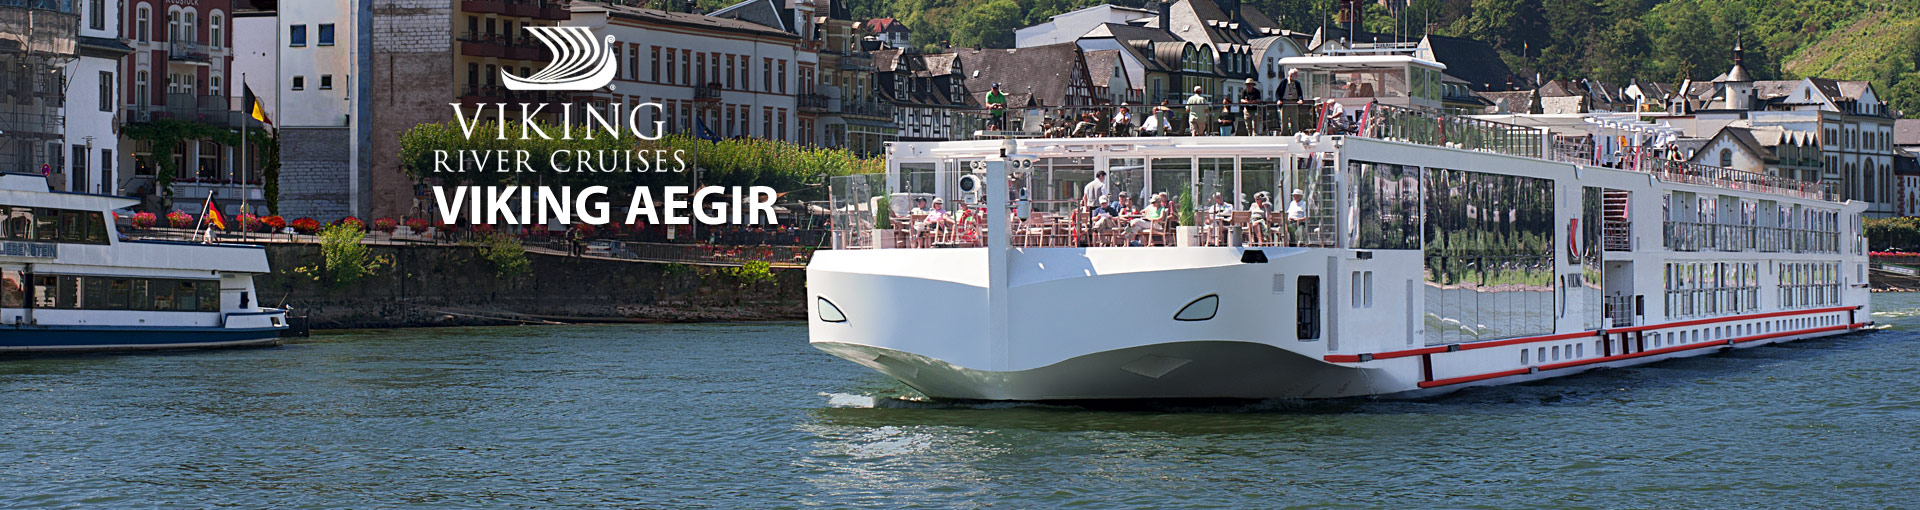 Viking Rivers Viking Aegir river cruise ship